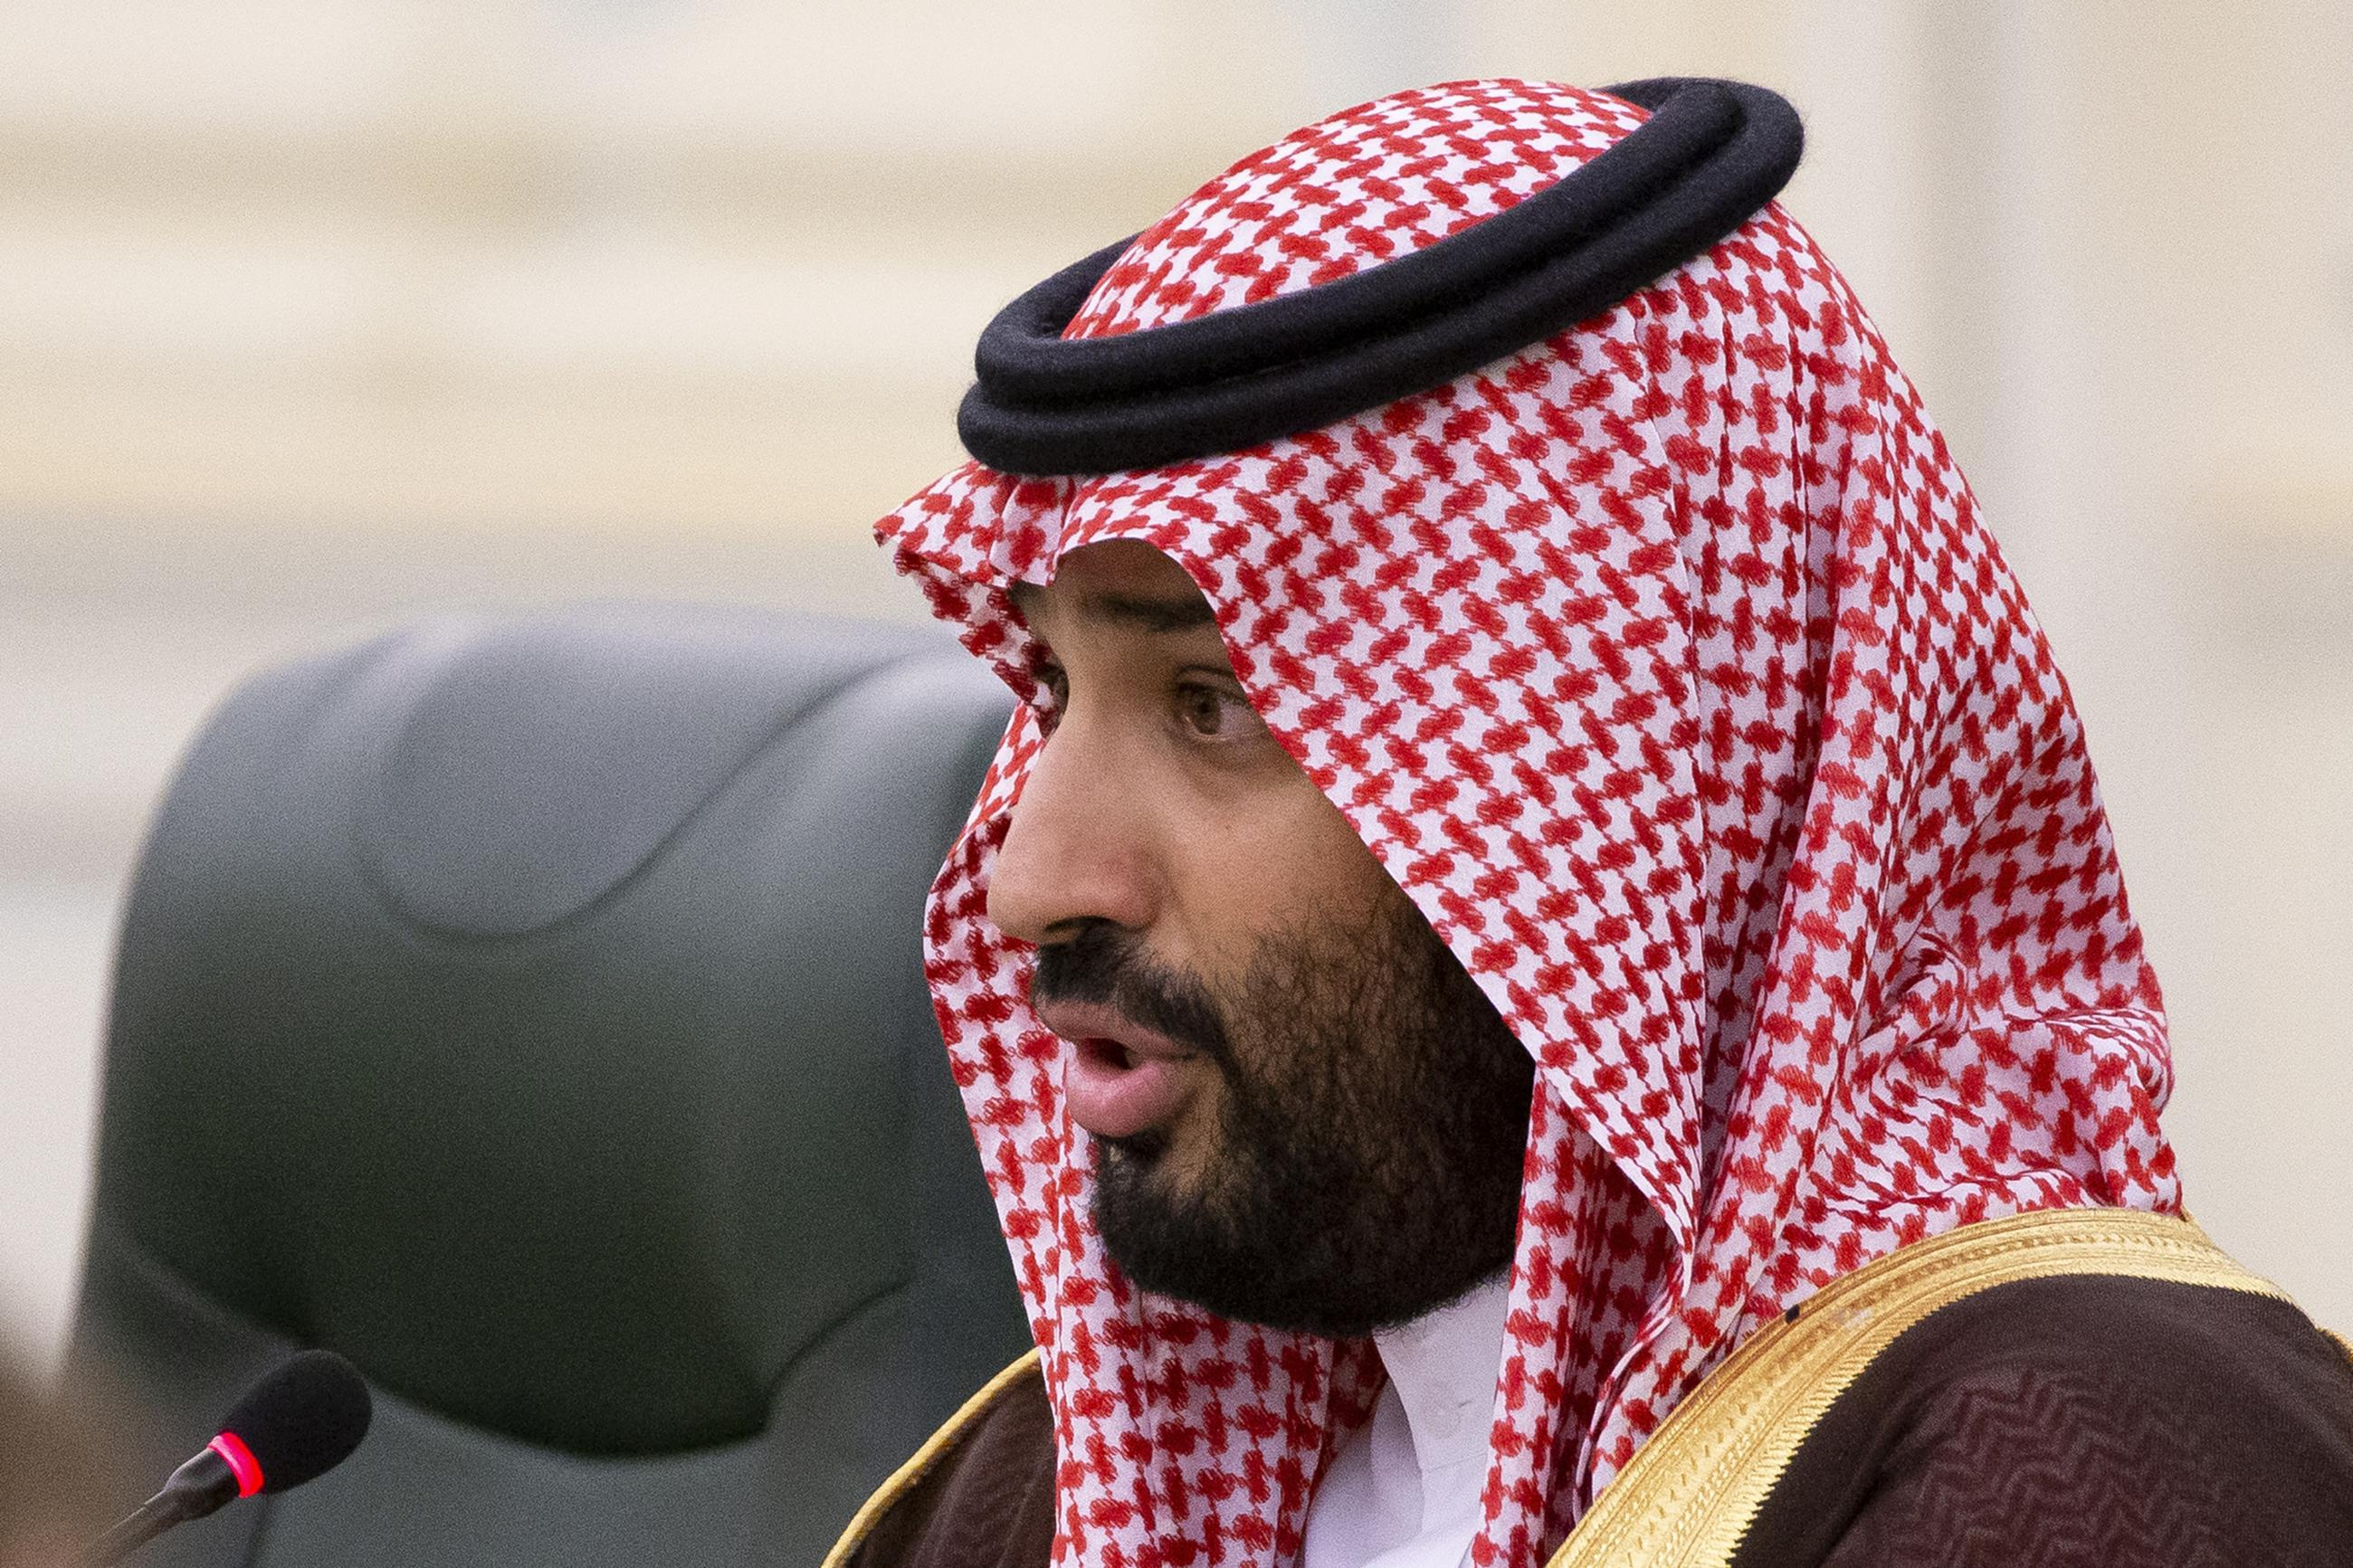 Lawmakers want answers on Saudi spying in wake of Bezos phone hack